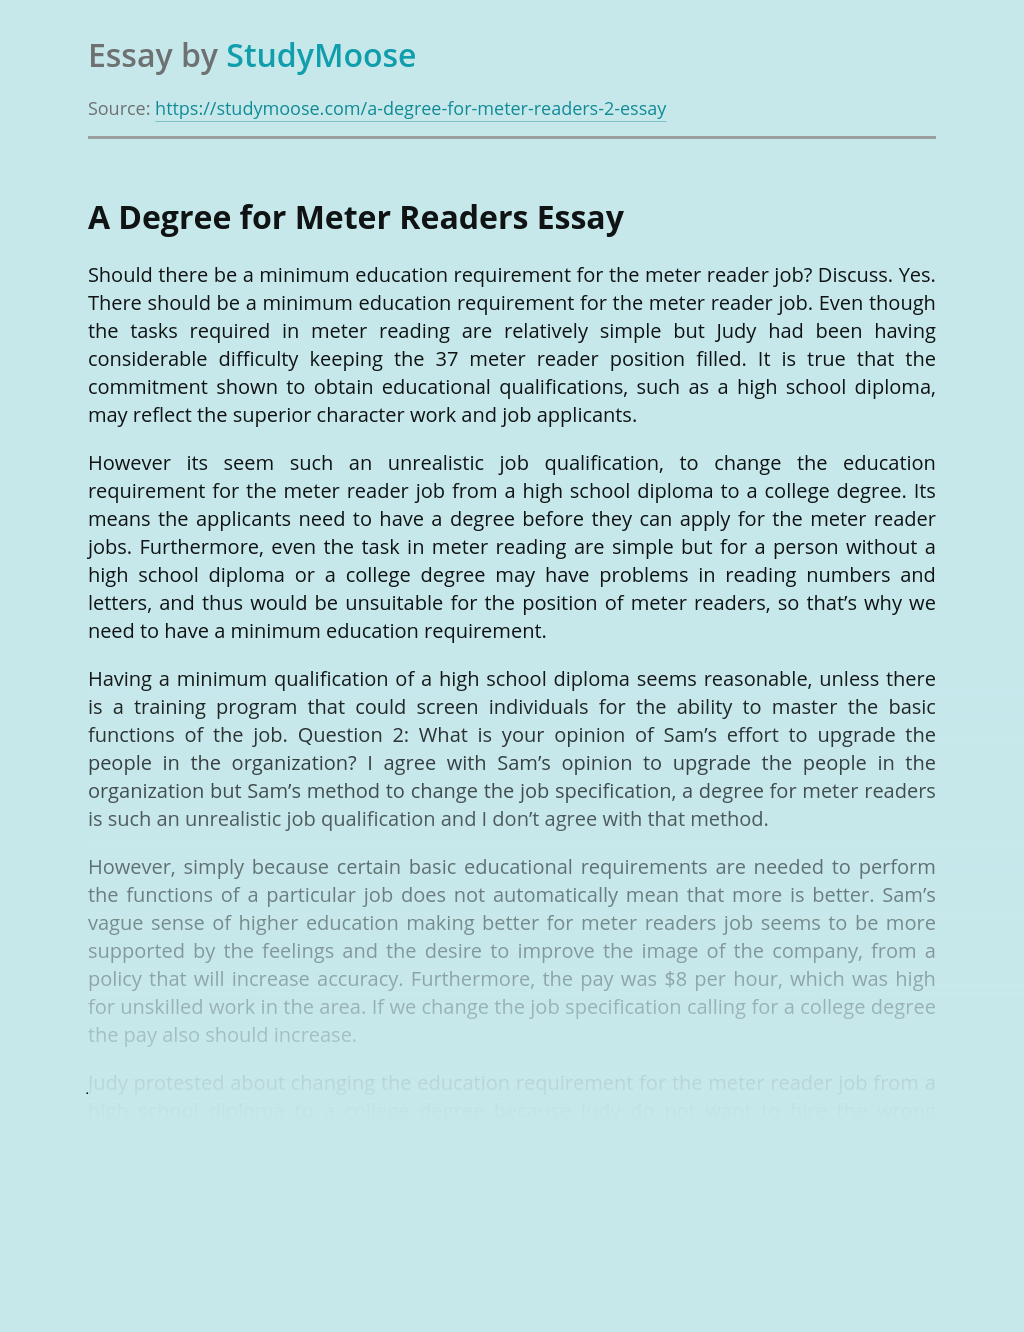 Education and A Degree for Meter Readers